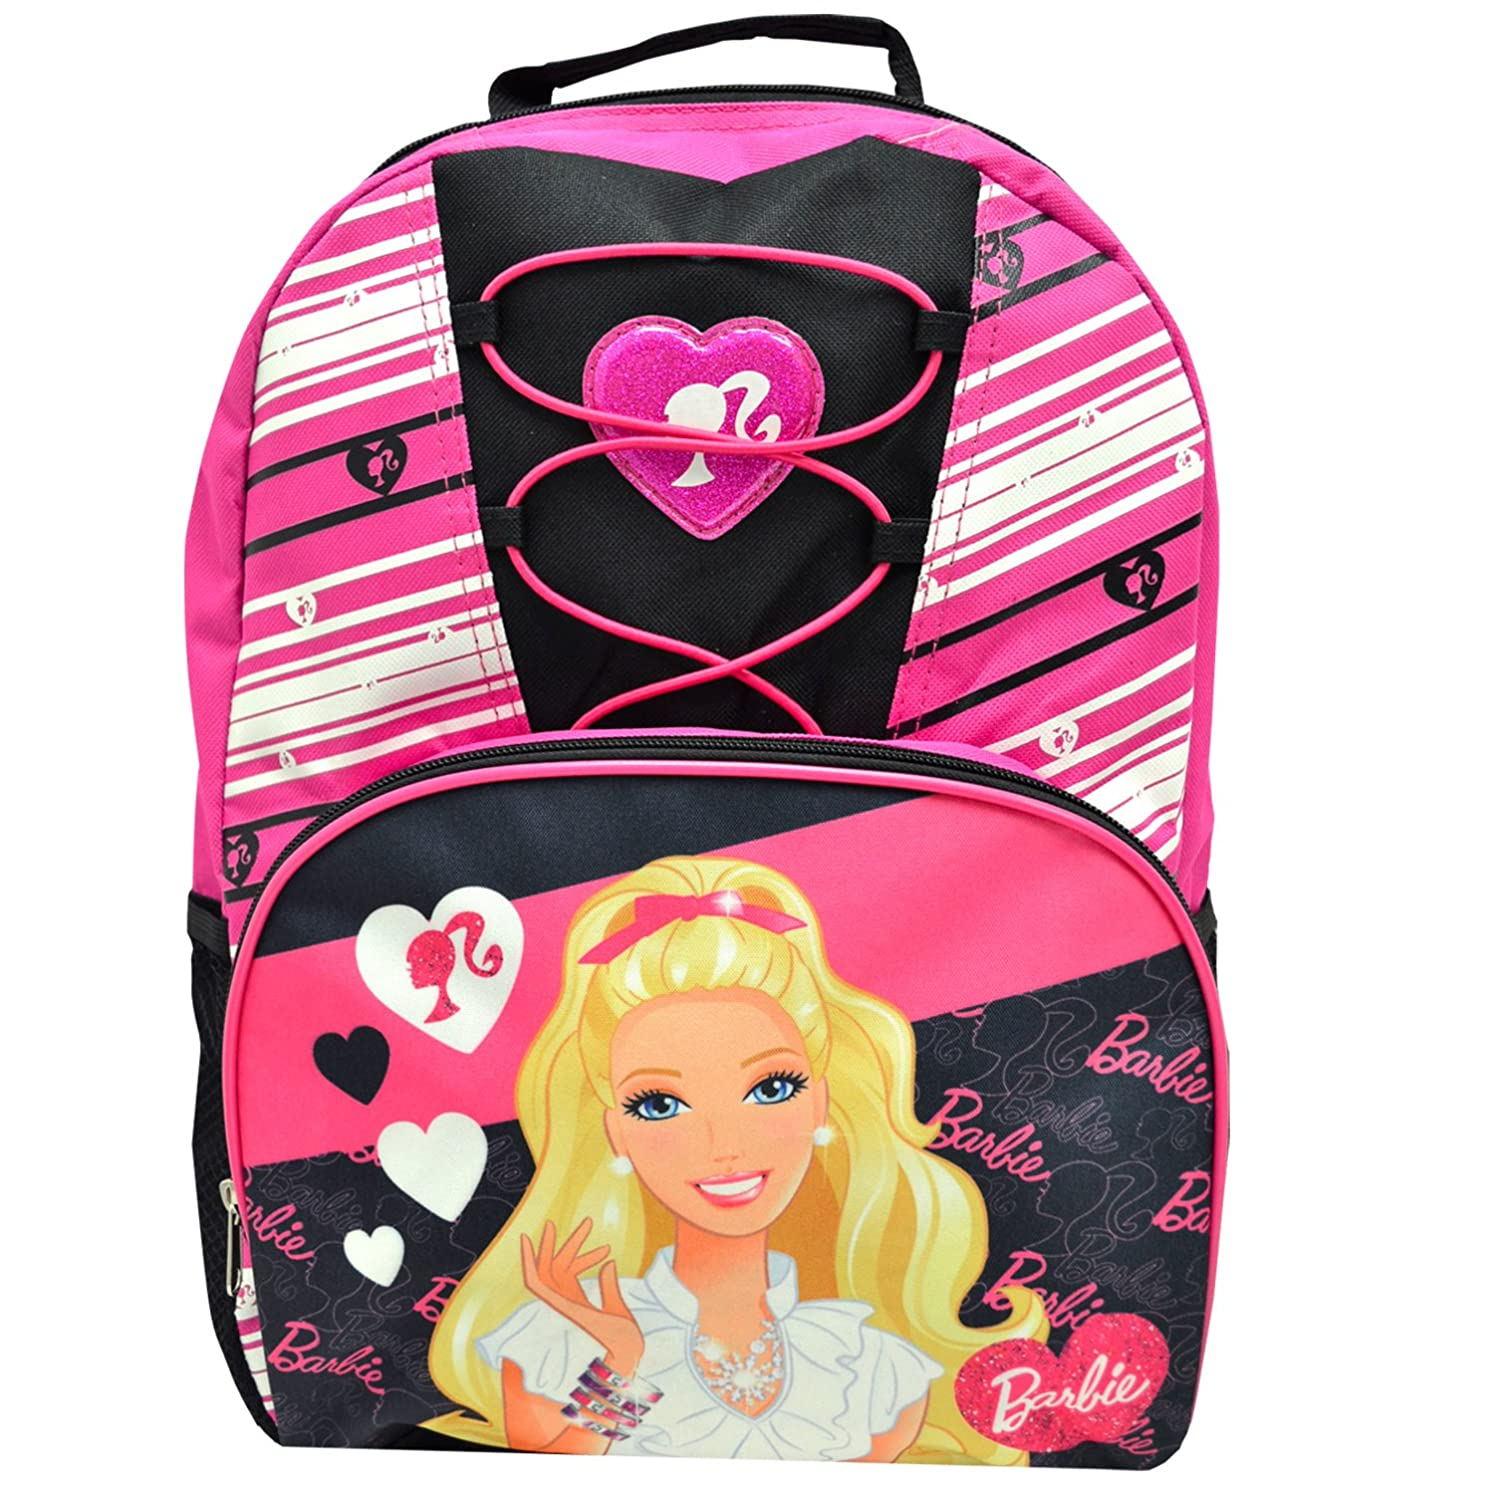 This Barbie Deluxe Lace Brand New Stylish Designed Backpack will sure to  bring smile to your little princes. 5ab4f9cad2